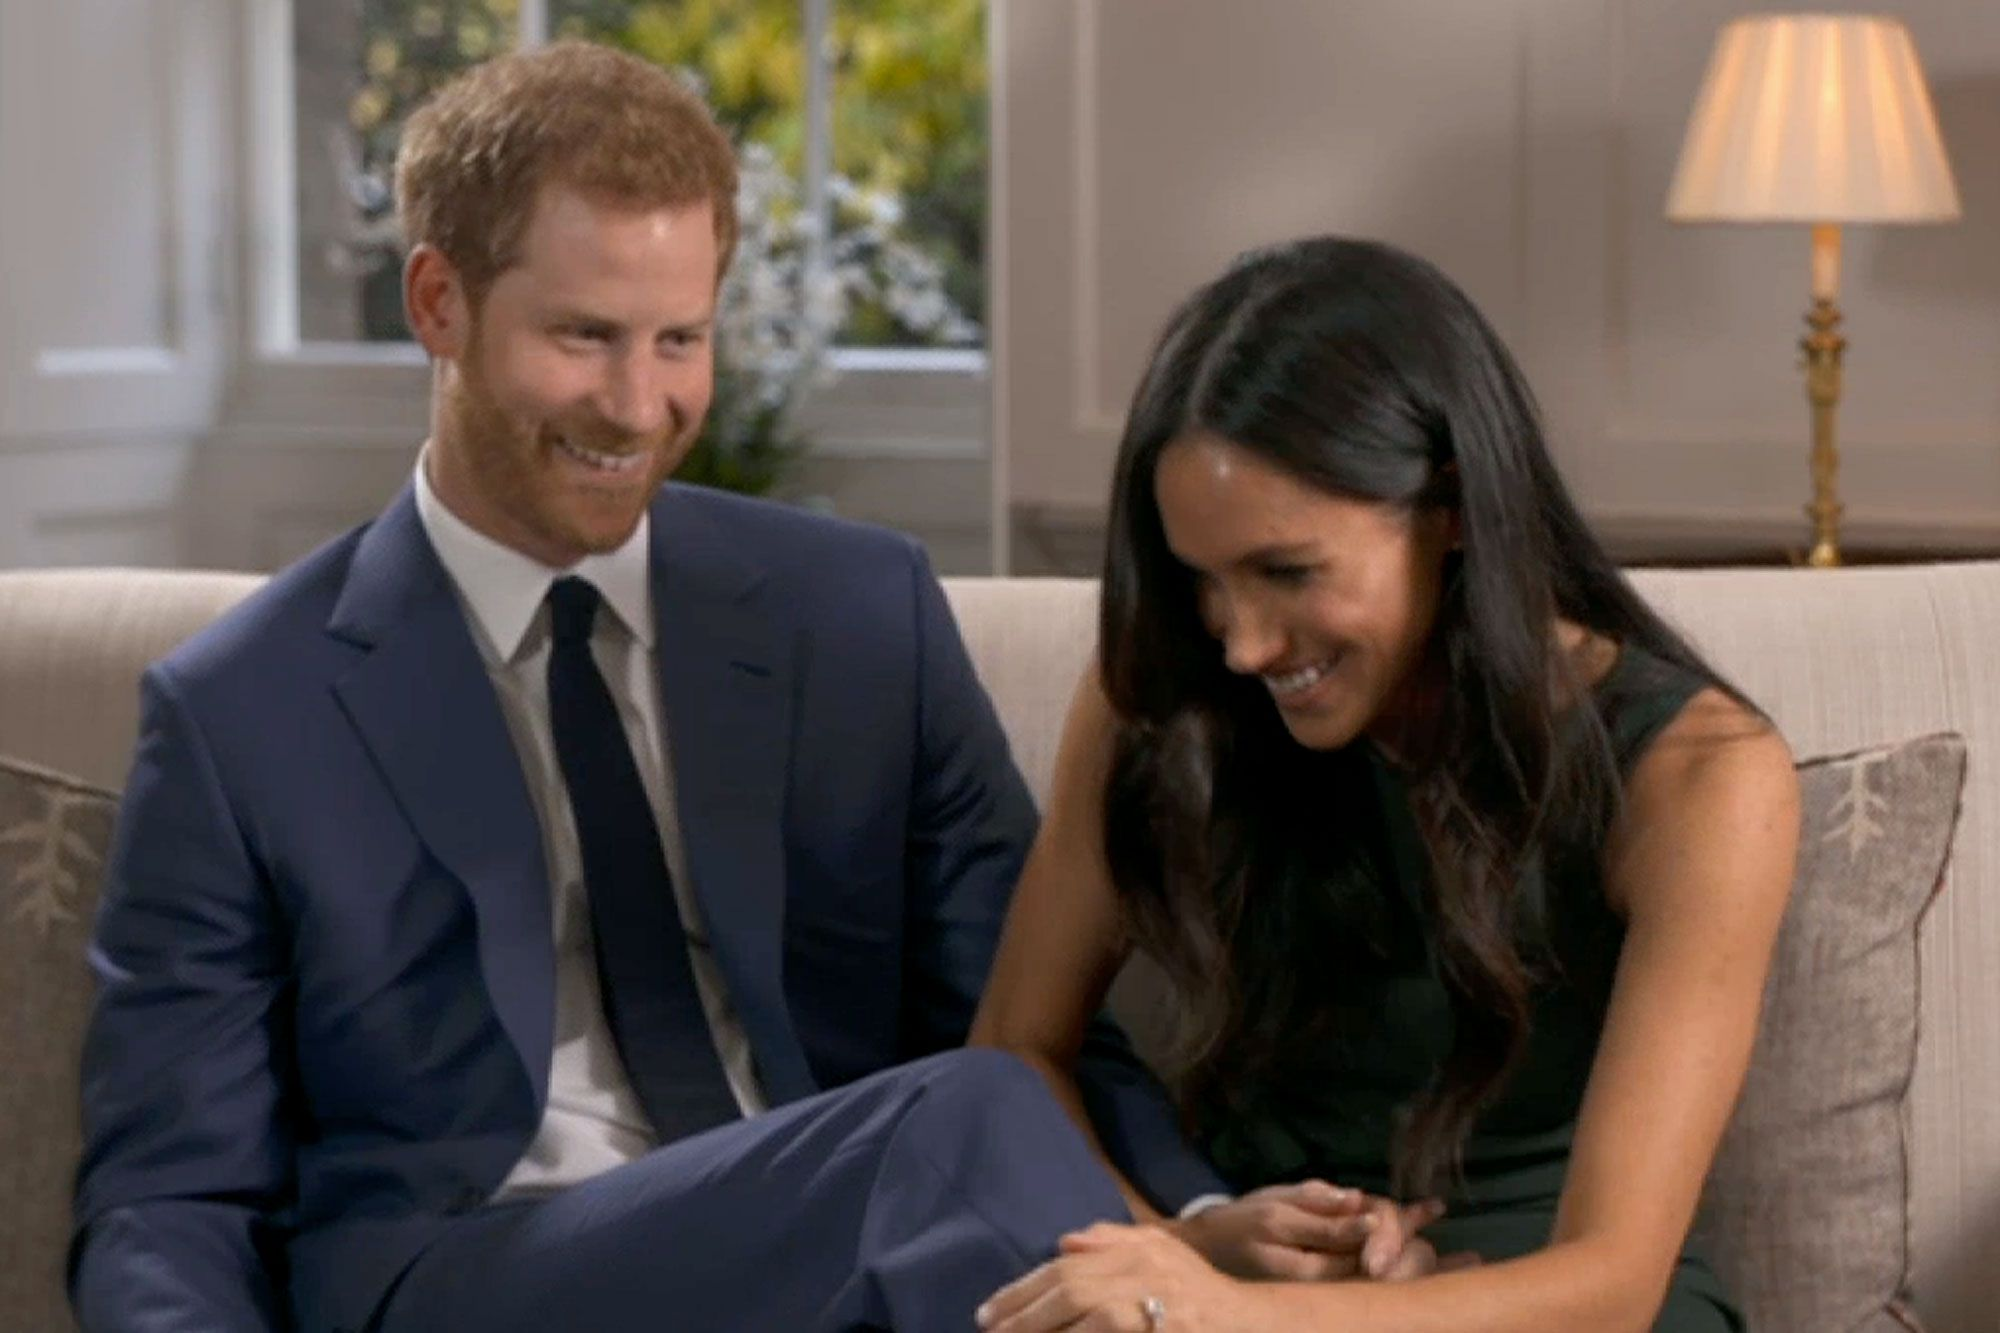 Meghan Markle And Prince Harry Giggle And Goof Off Behind The Scenes Of Engagement Interview Meghan Markle American Princess Prince Harry